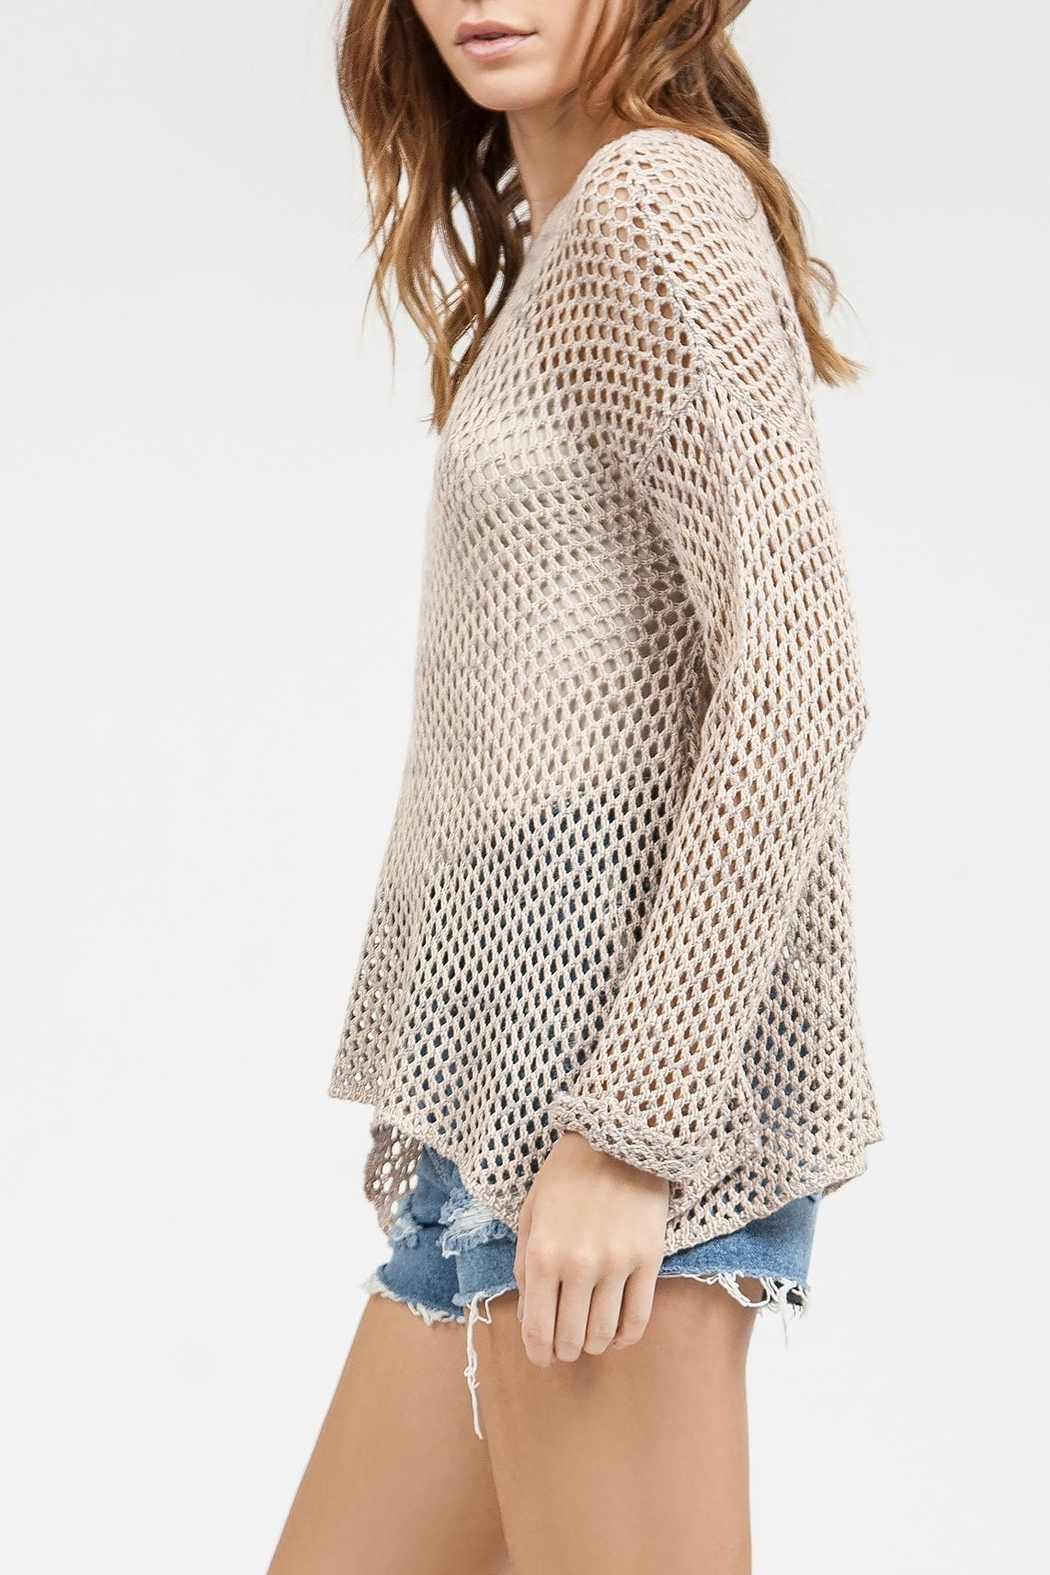 Blu Pepper Crochet Sweater Top - Front Cropped Image